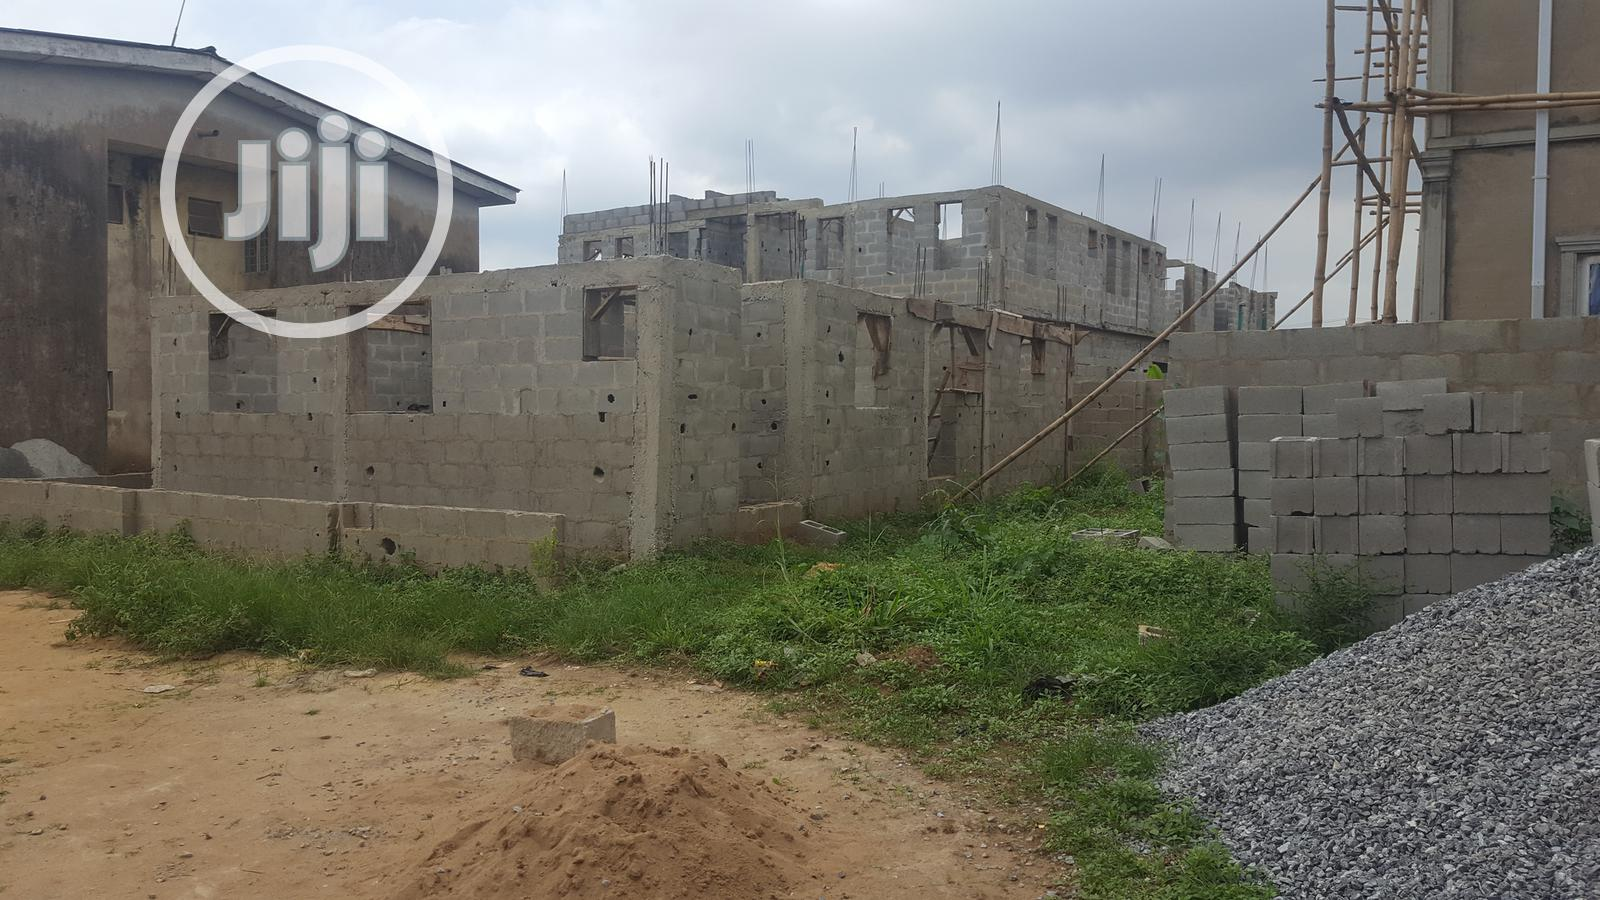 Archive: Standard Dry Land For Sale With Deed of Transfer, Family Receipt